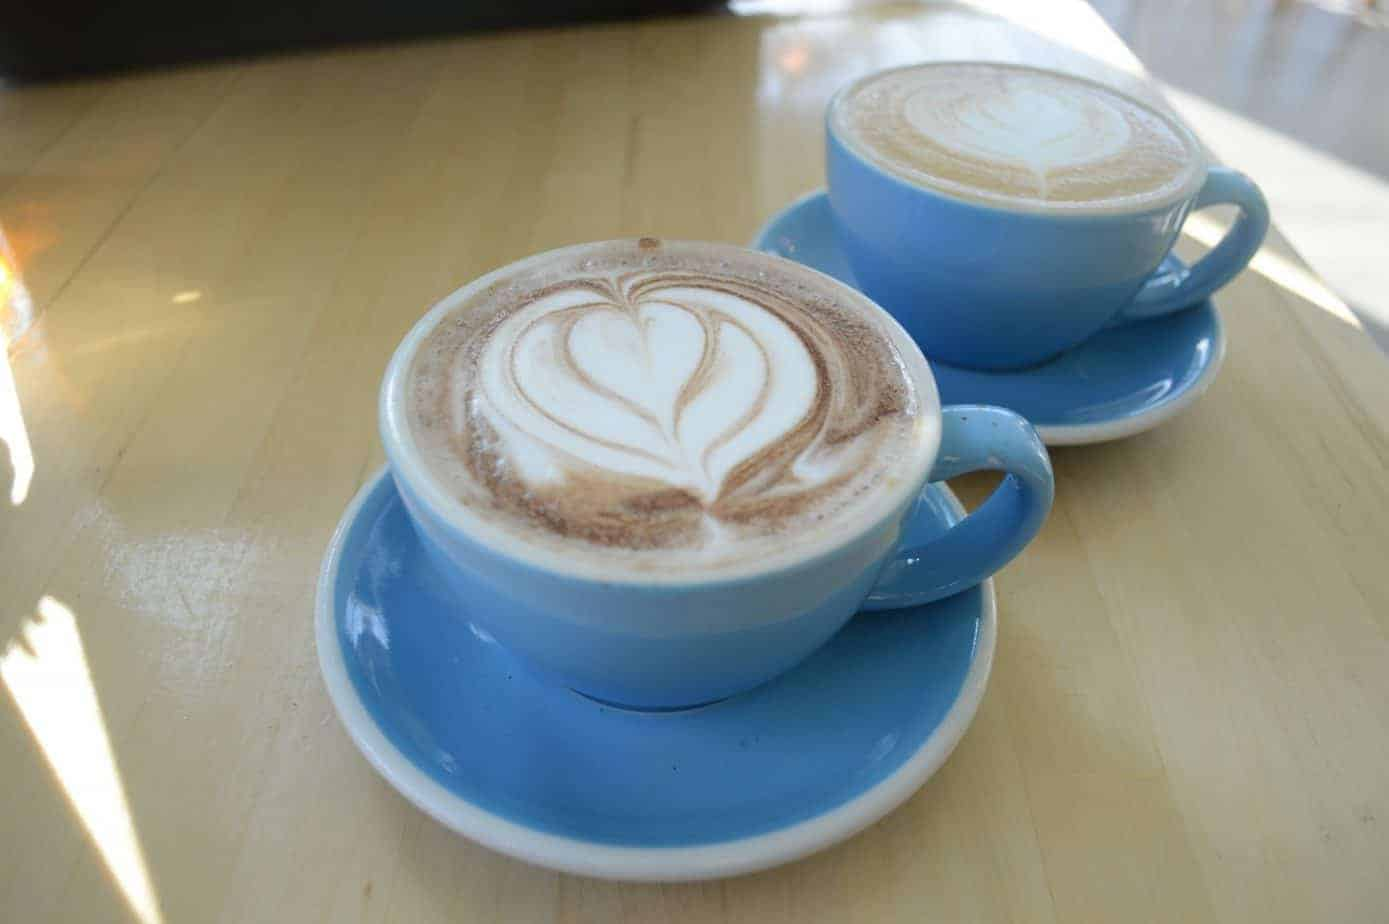 best burlington vermont coffee shops header image - photo of a latte and a mocha on a table, cups are light blue